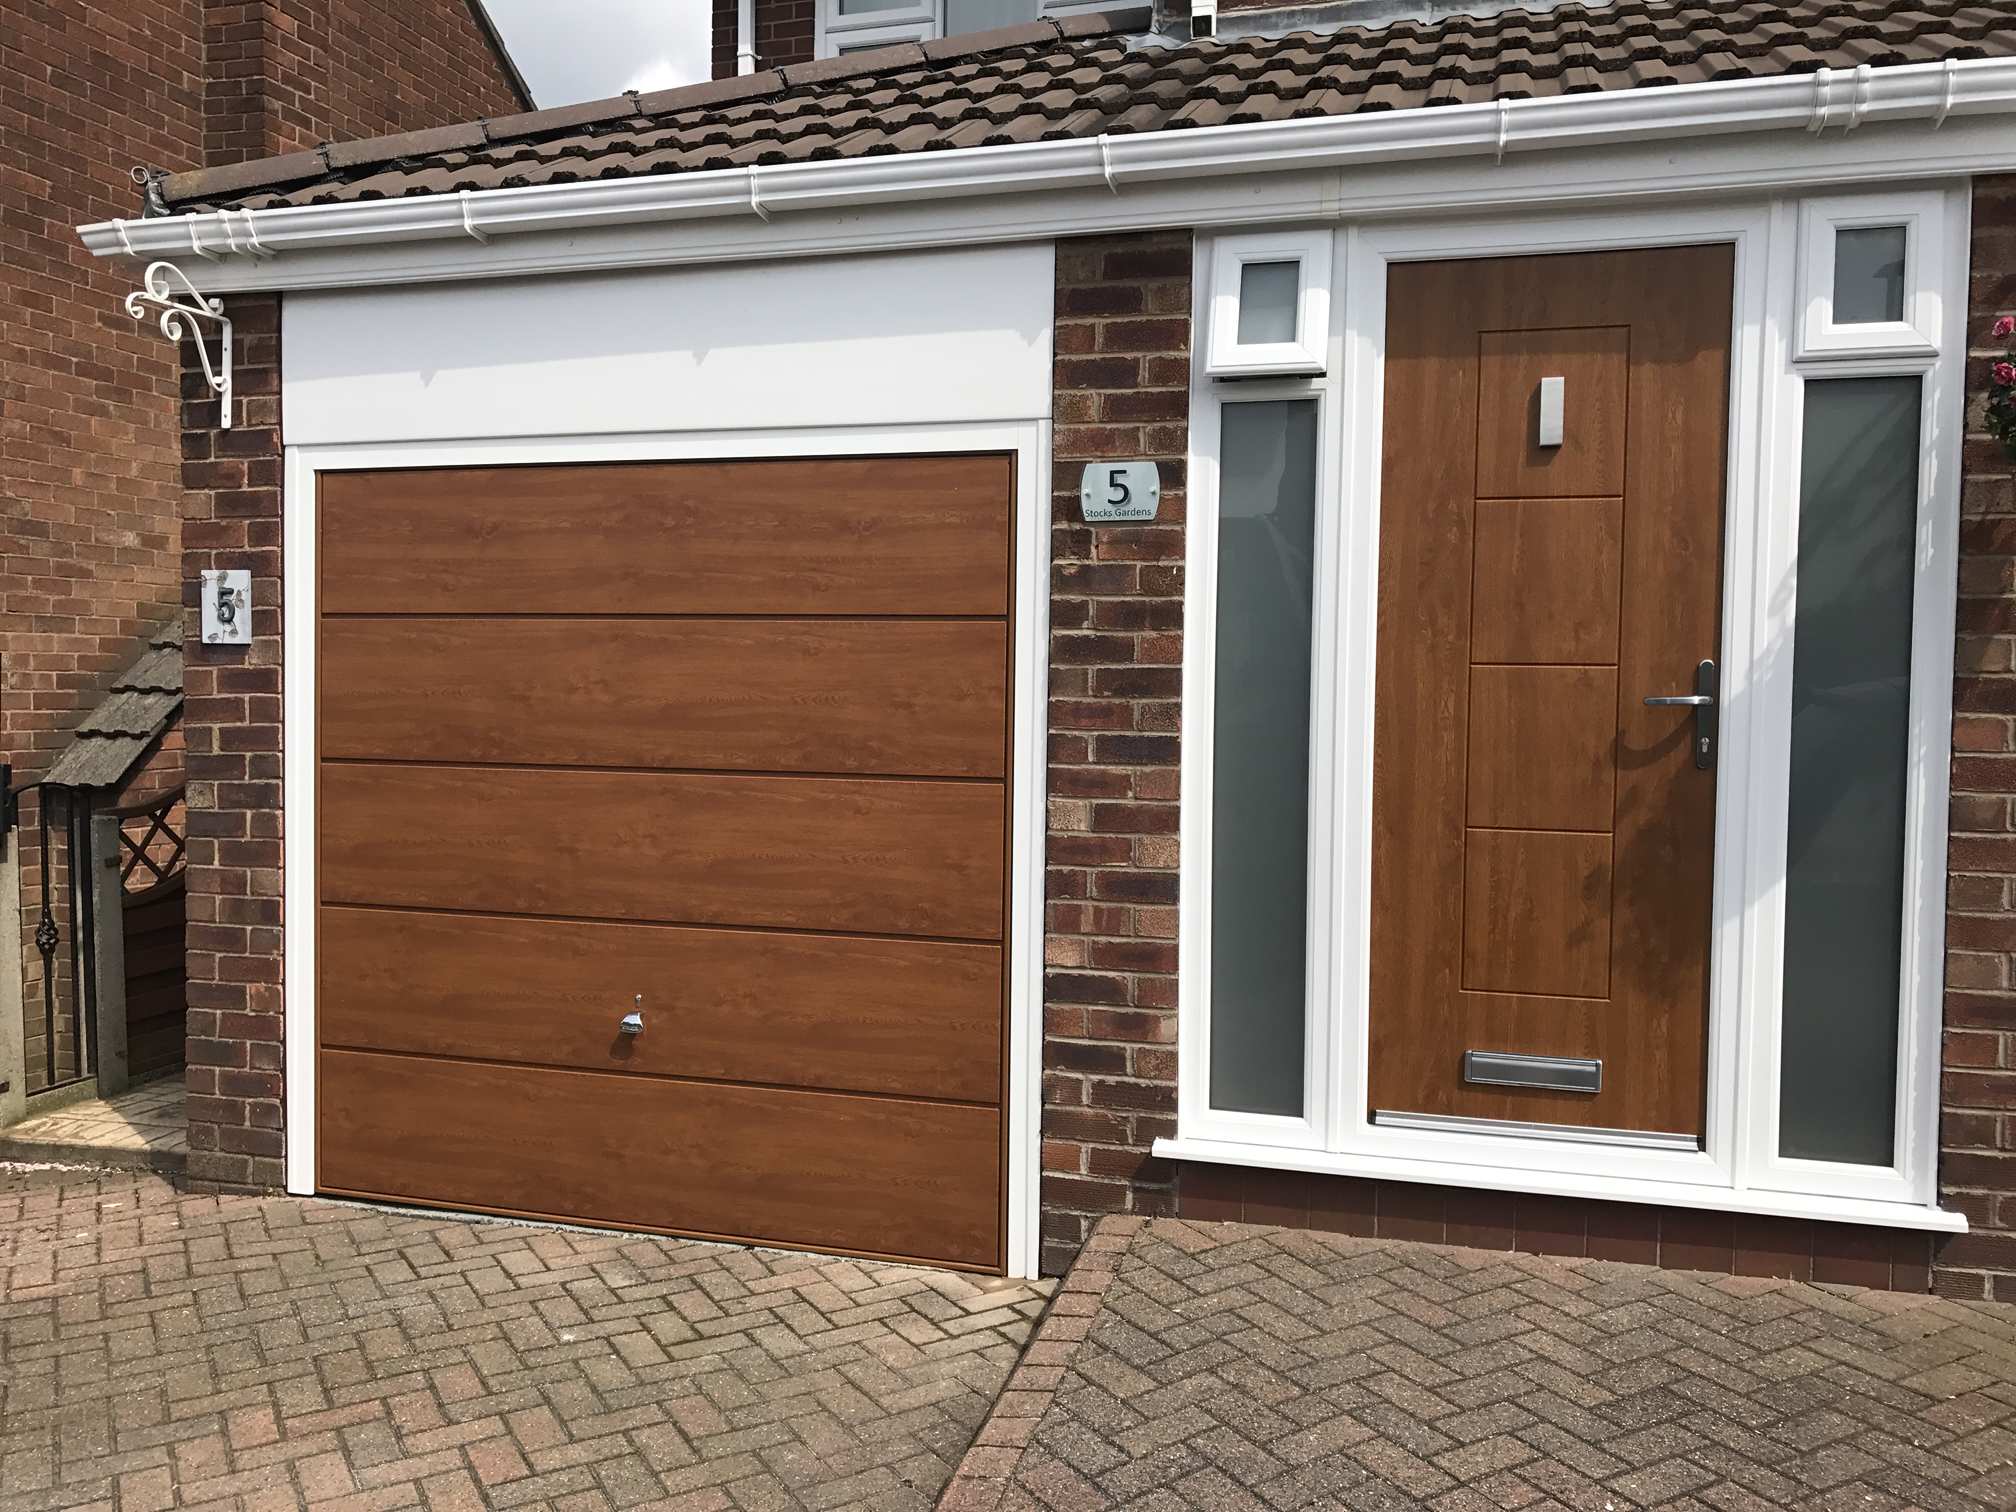 Hormann garage door stalybridge pennine garage doors for Garage doors uk